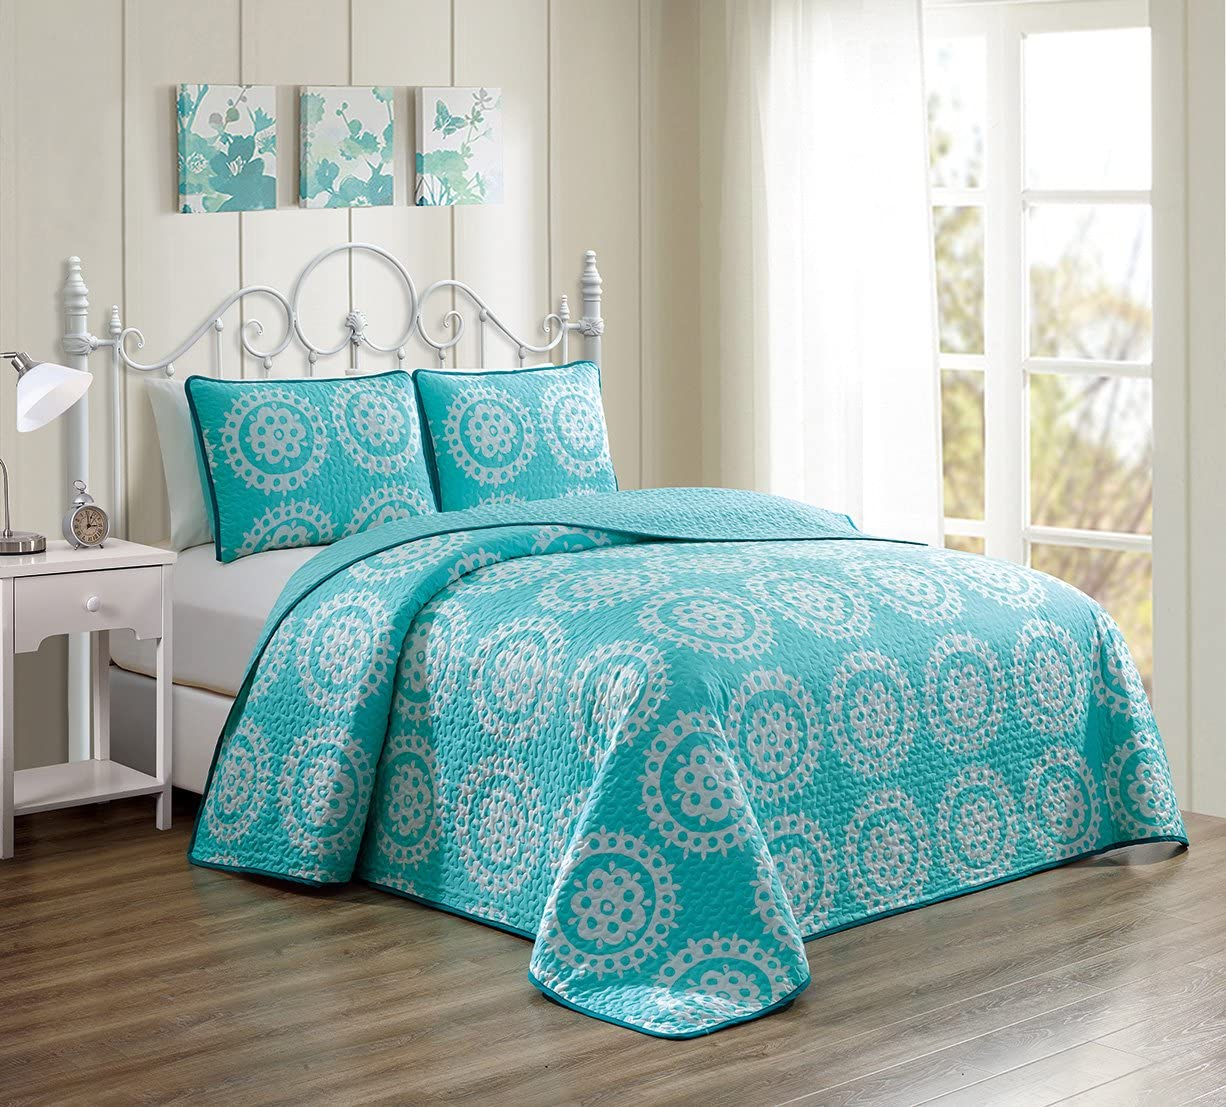 GrandLinen 3 Piece Turquoise BlueWhite Scroll Fine printed Prewashed Quilt Set Reversible Bedspread Coverlet FULL/QUEEN SIZE Bed Cover